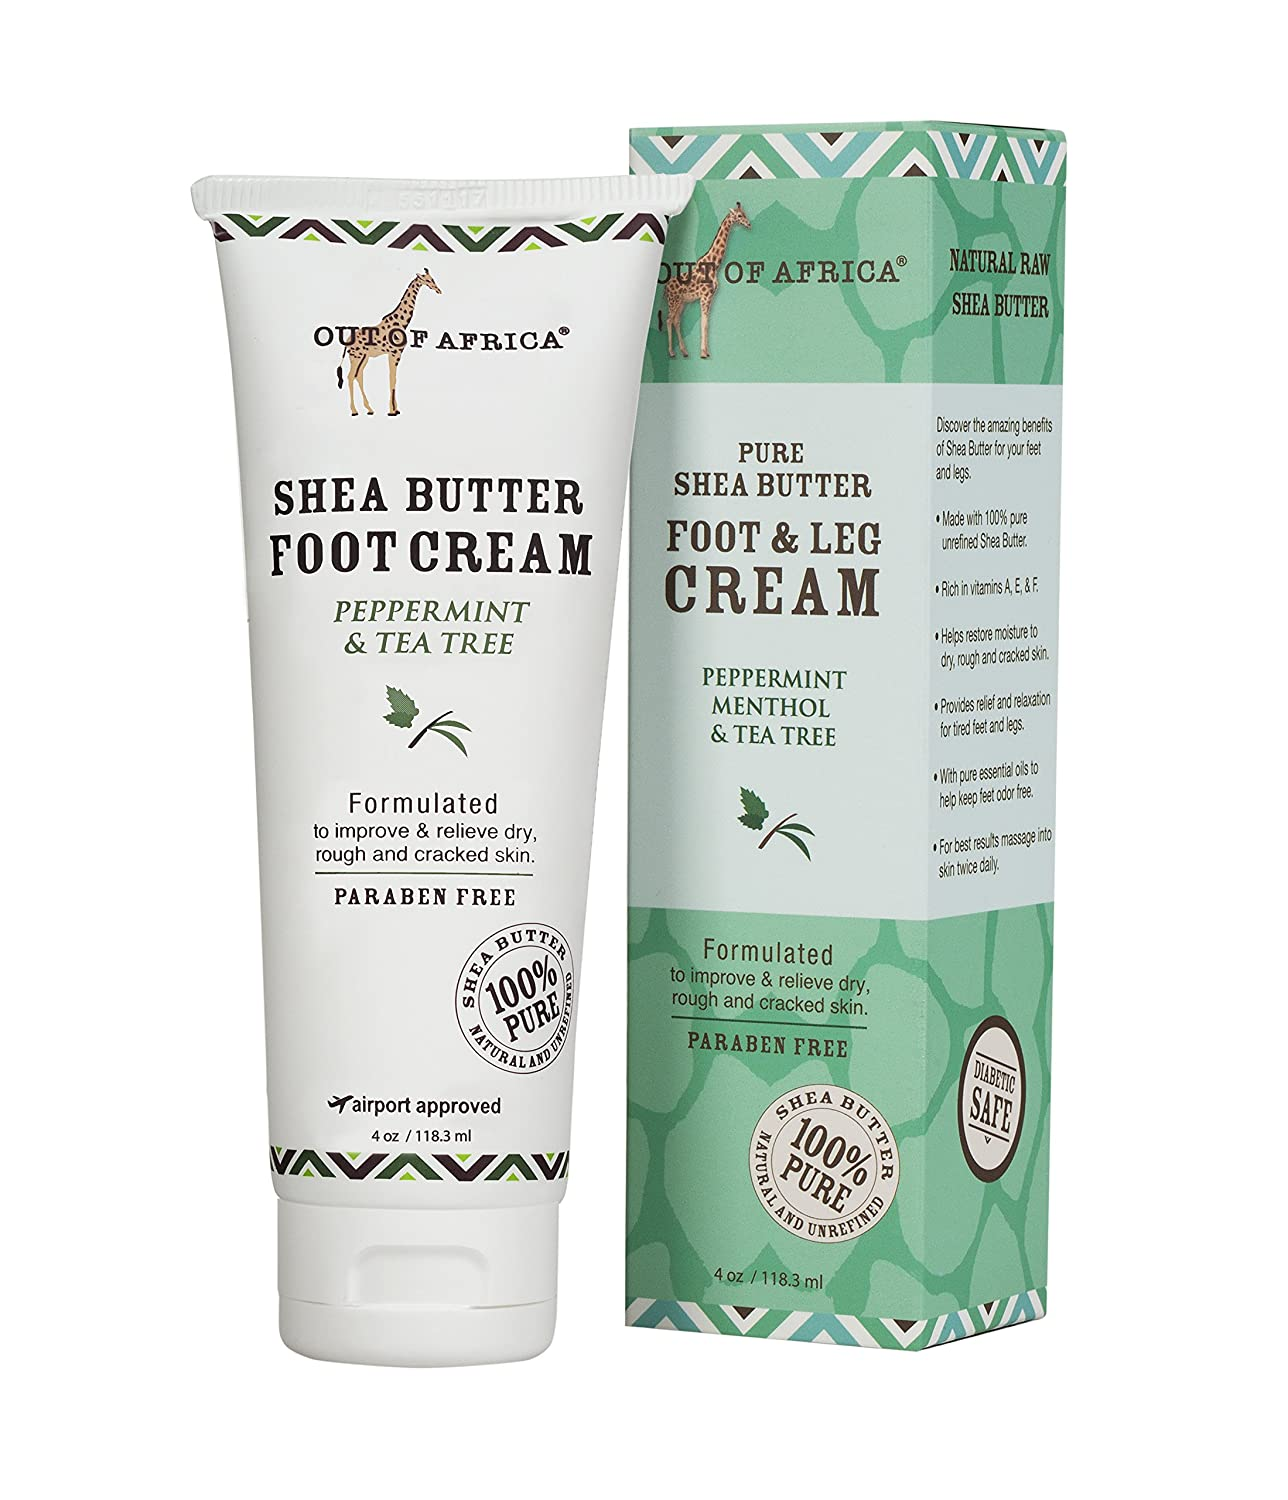 Out of Africa Peppermint Menthol & Tea Tree Foot Cream, 4 Ounce California Inside & Out